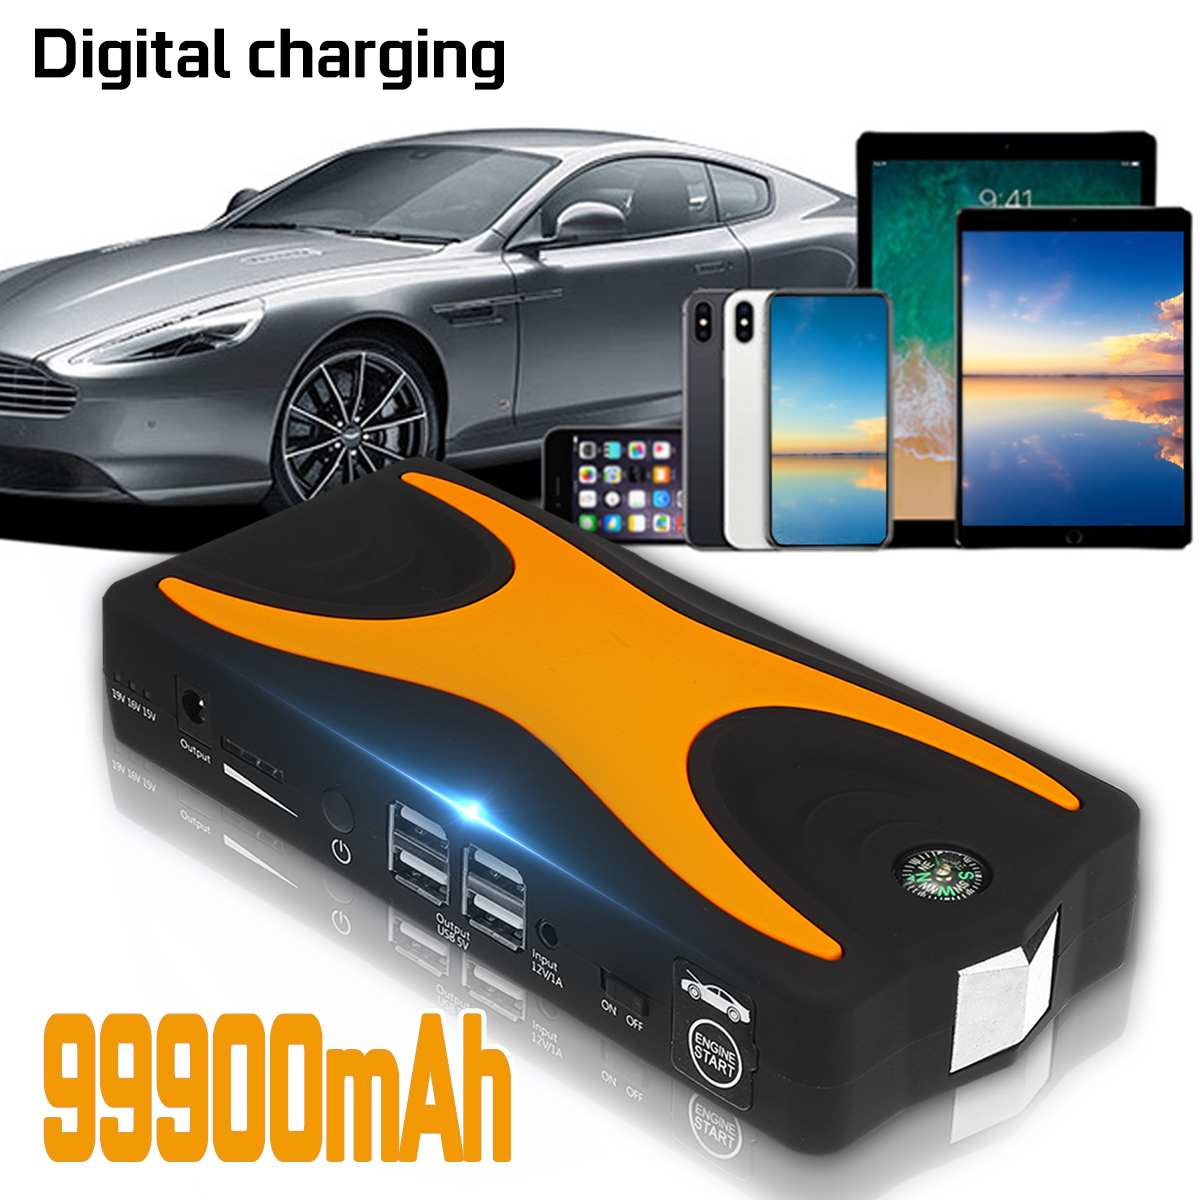 Jump Starter Charger Booster Power-Bank 900a-Car Diesel 99900mah 4USB 15V Ce for Petrol